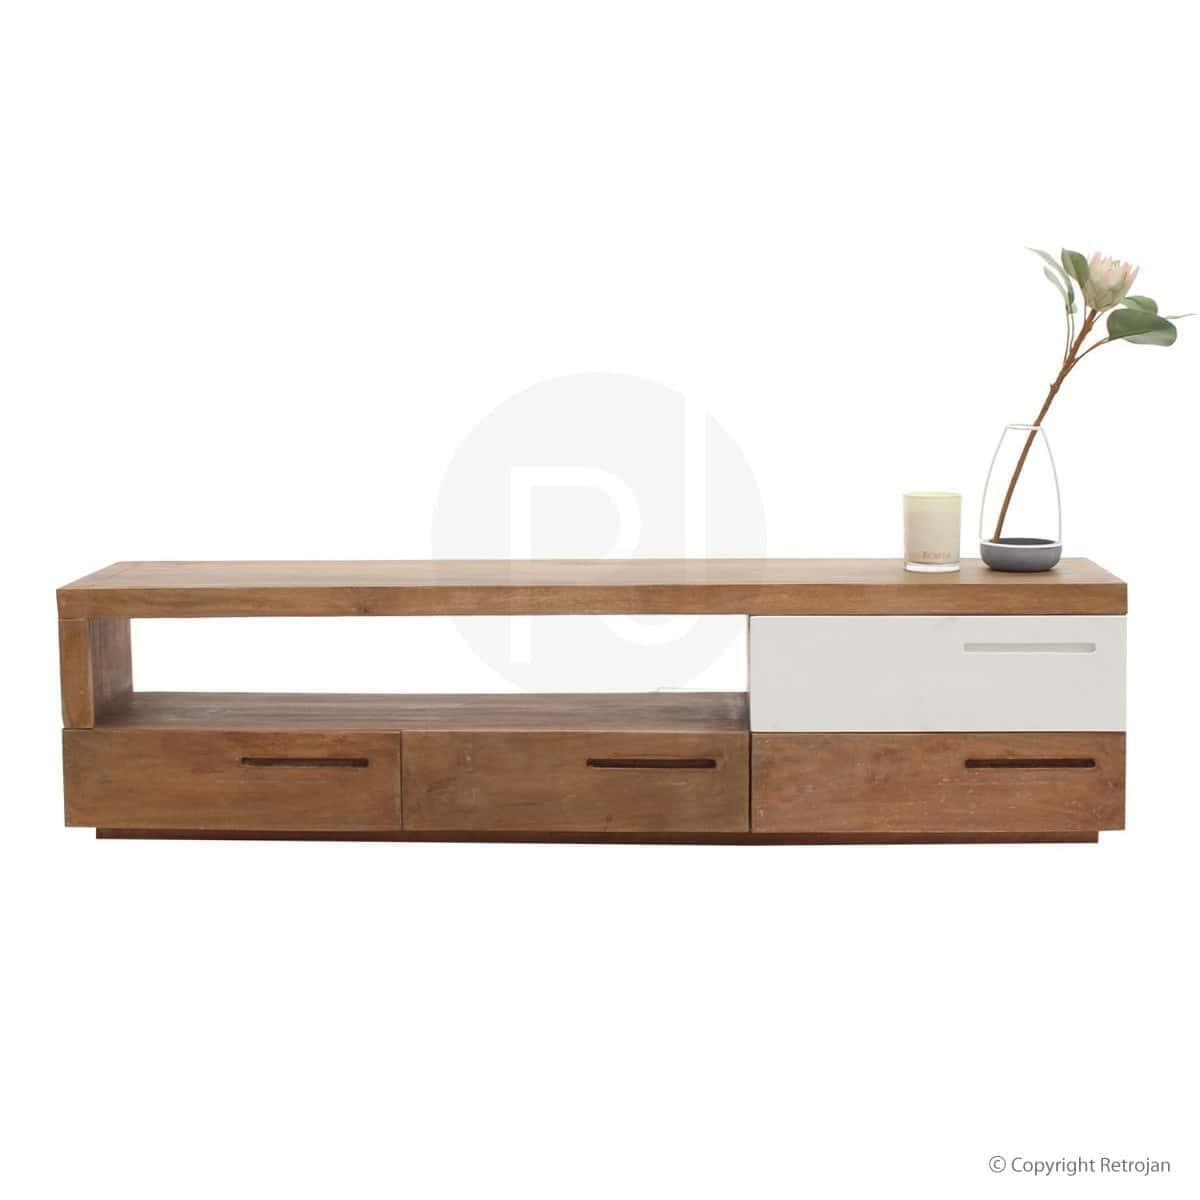 Odette Designer Entertainment Unit - Solid Wood